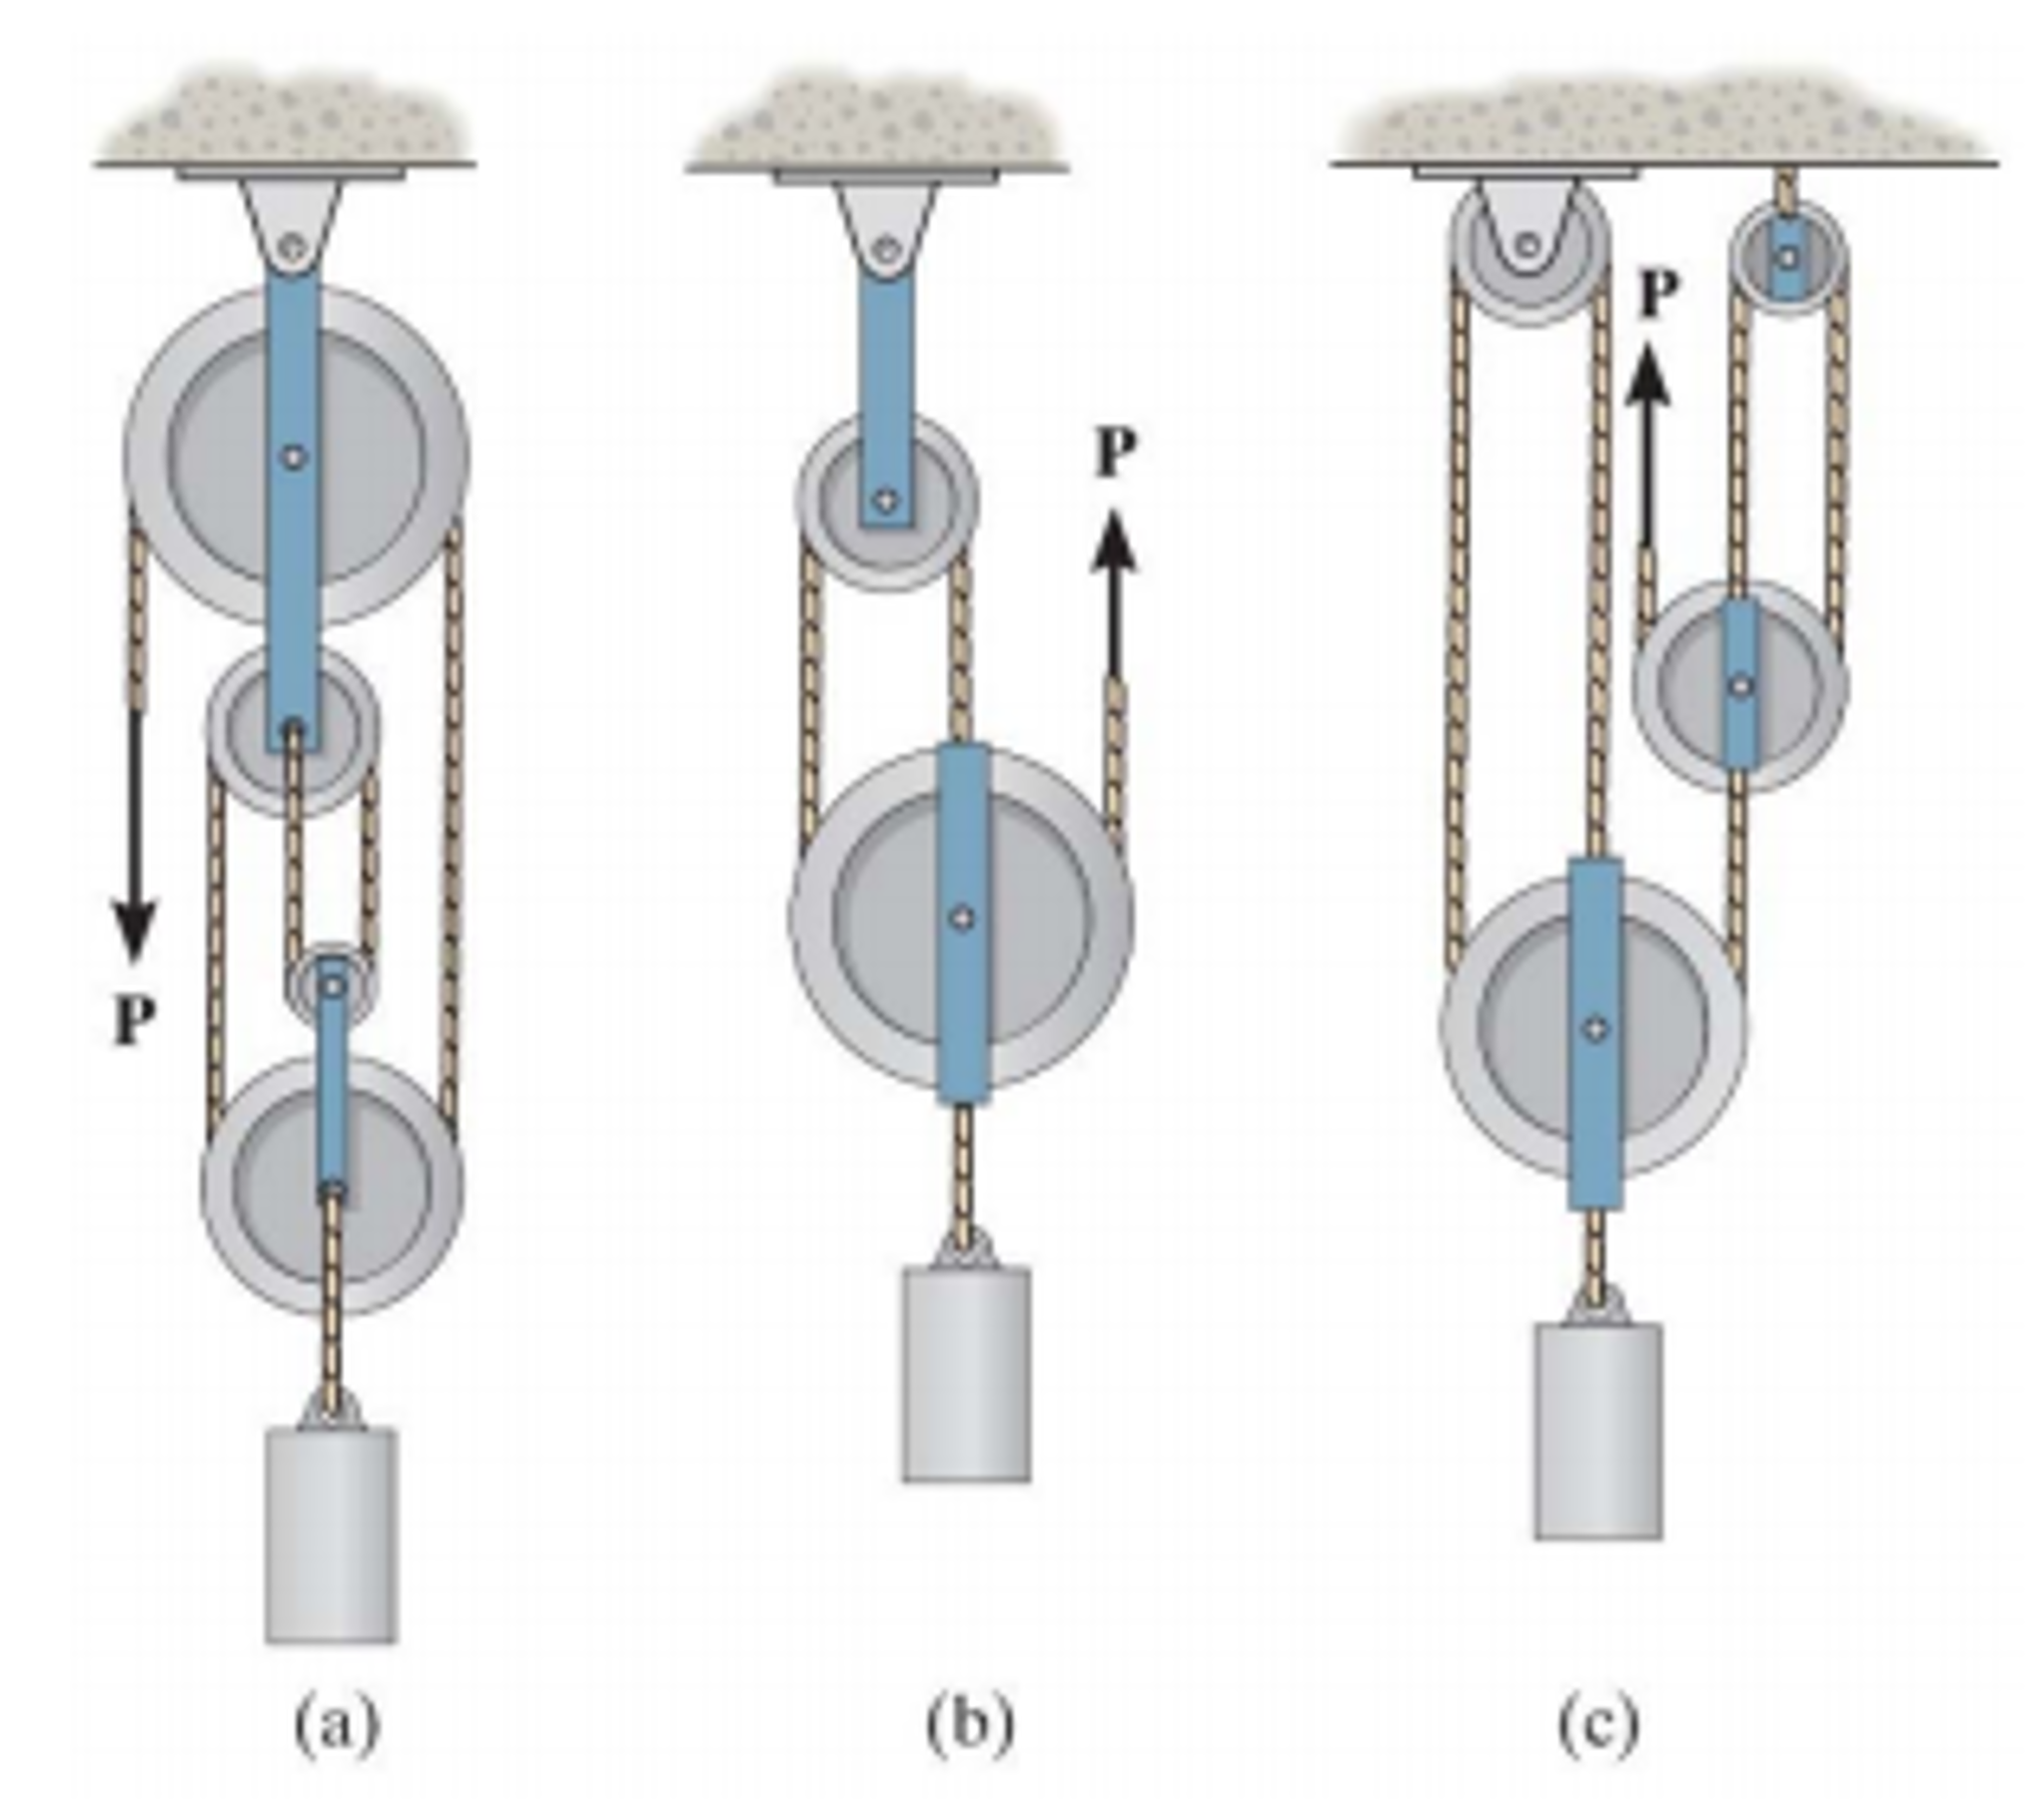 an experiment to determine force required to pull a shoe with varying mass For example the fluid around the mass, which has not been mentioned in the ideal case, might make a significant contribute to the frictional force and there are many well documented examples where the frictional force is proportional to the speed of the mass or proportional to the (speed)$^2.